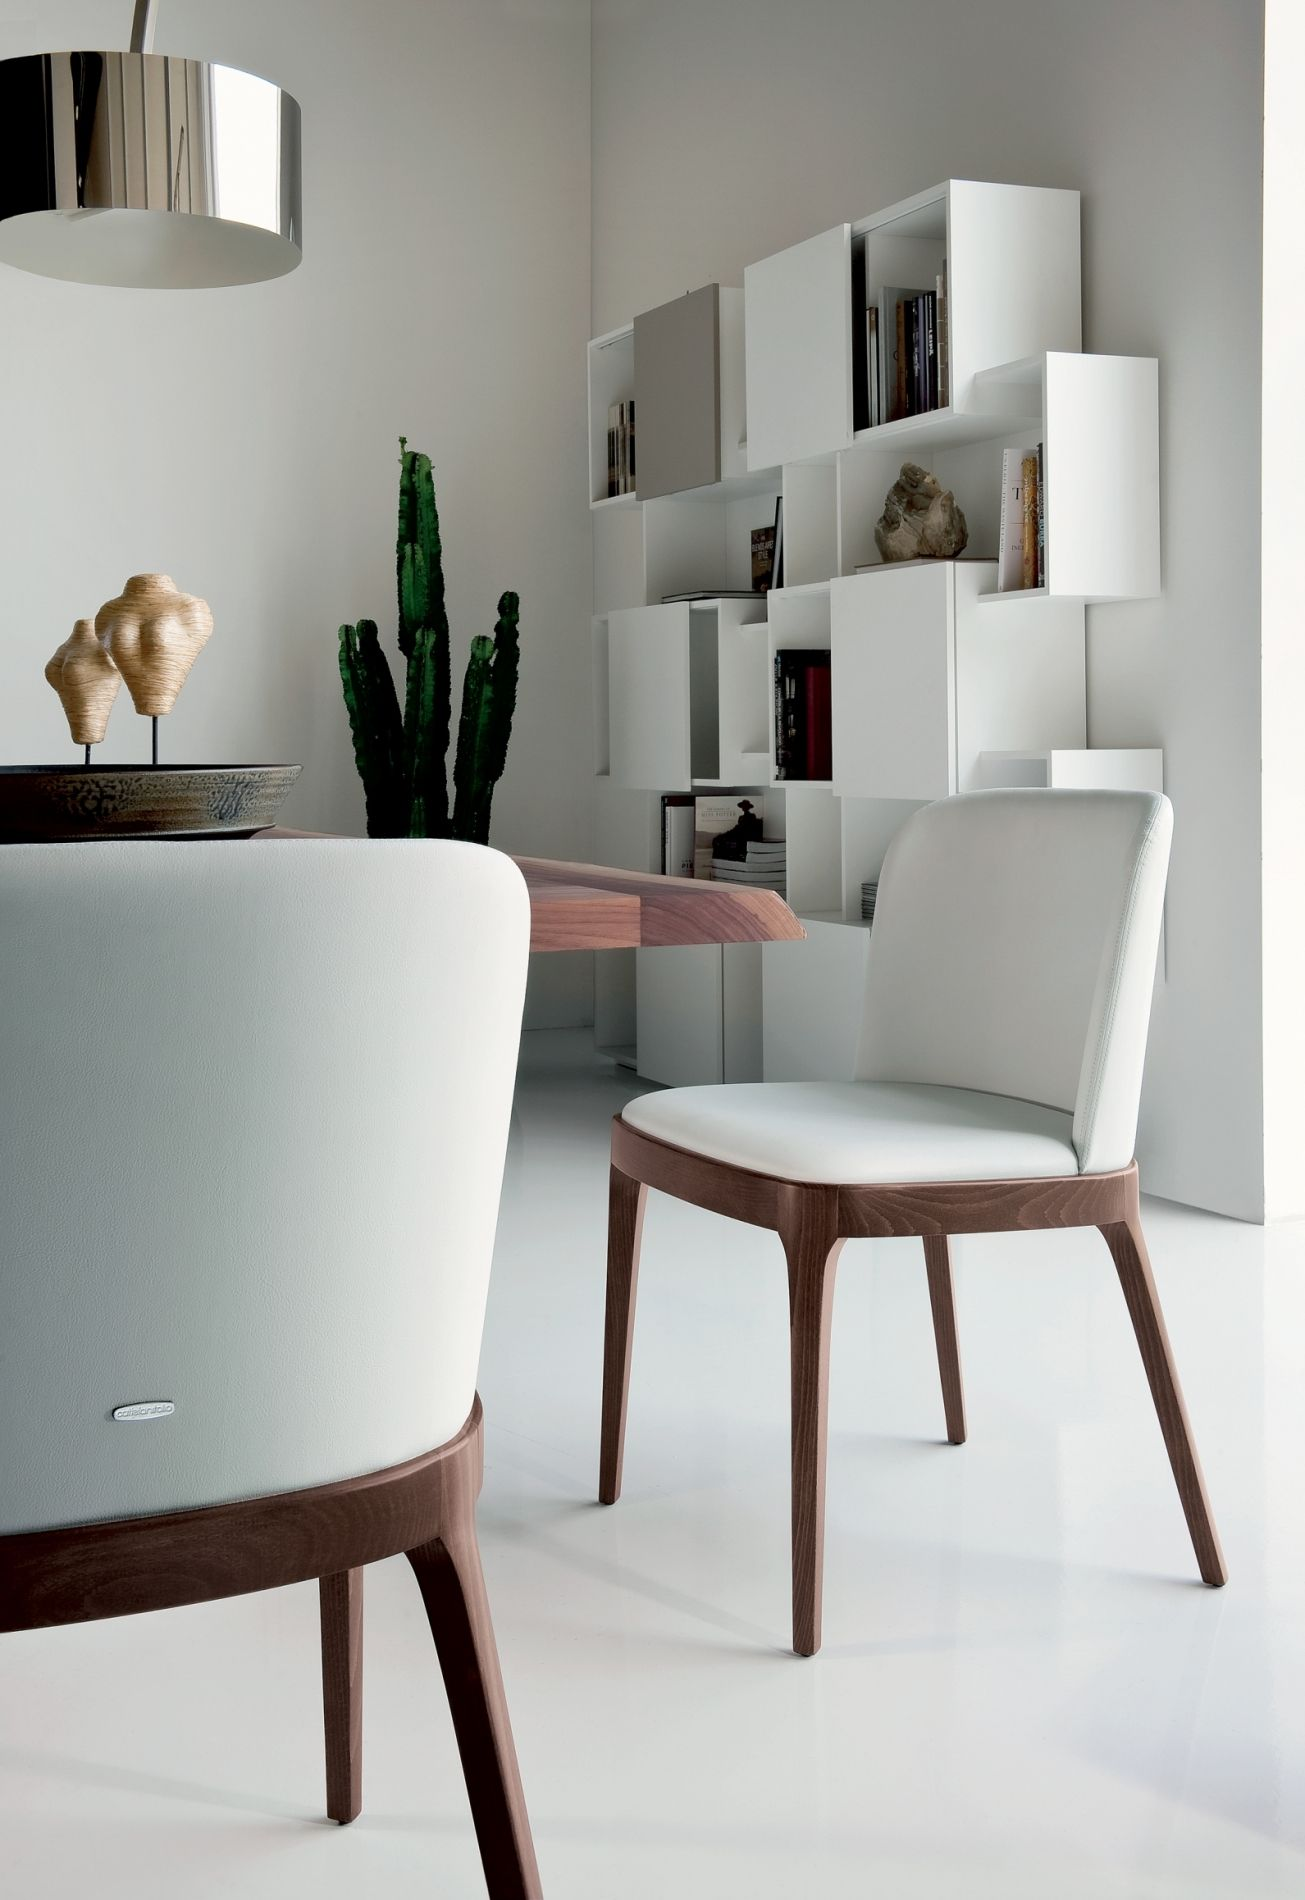 This Luxury Dining Chair By Cattelan Italia Is Perfectly Suited For